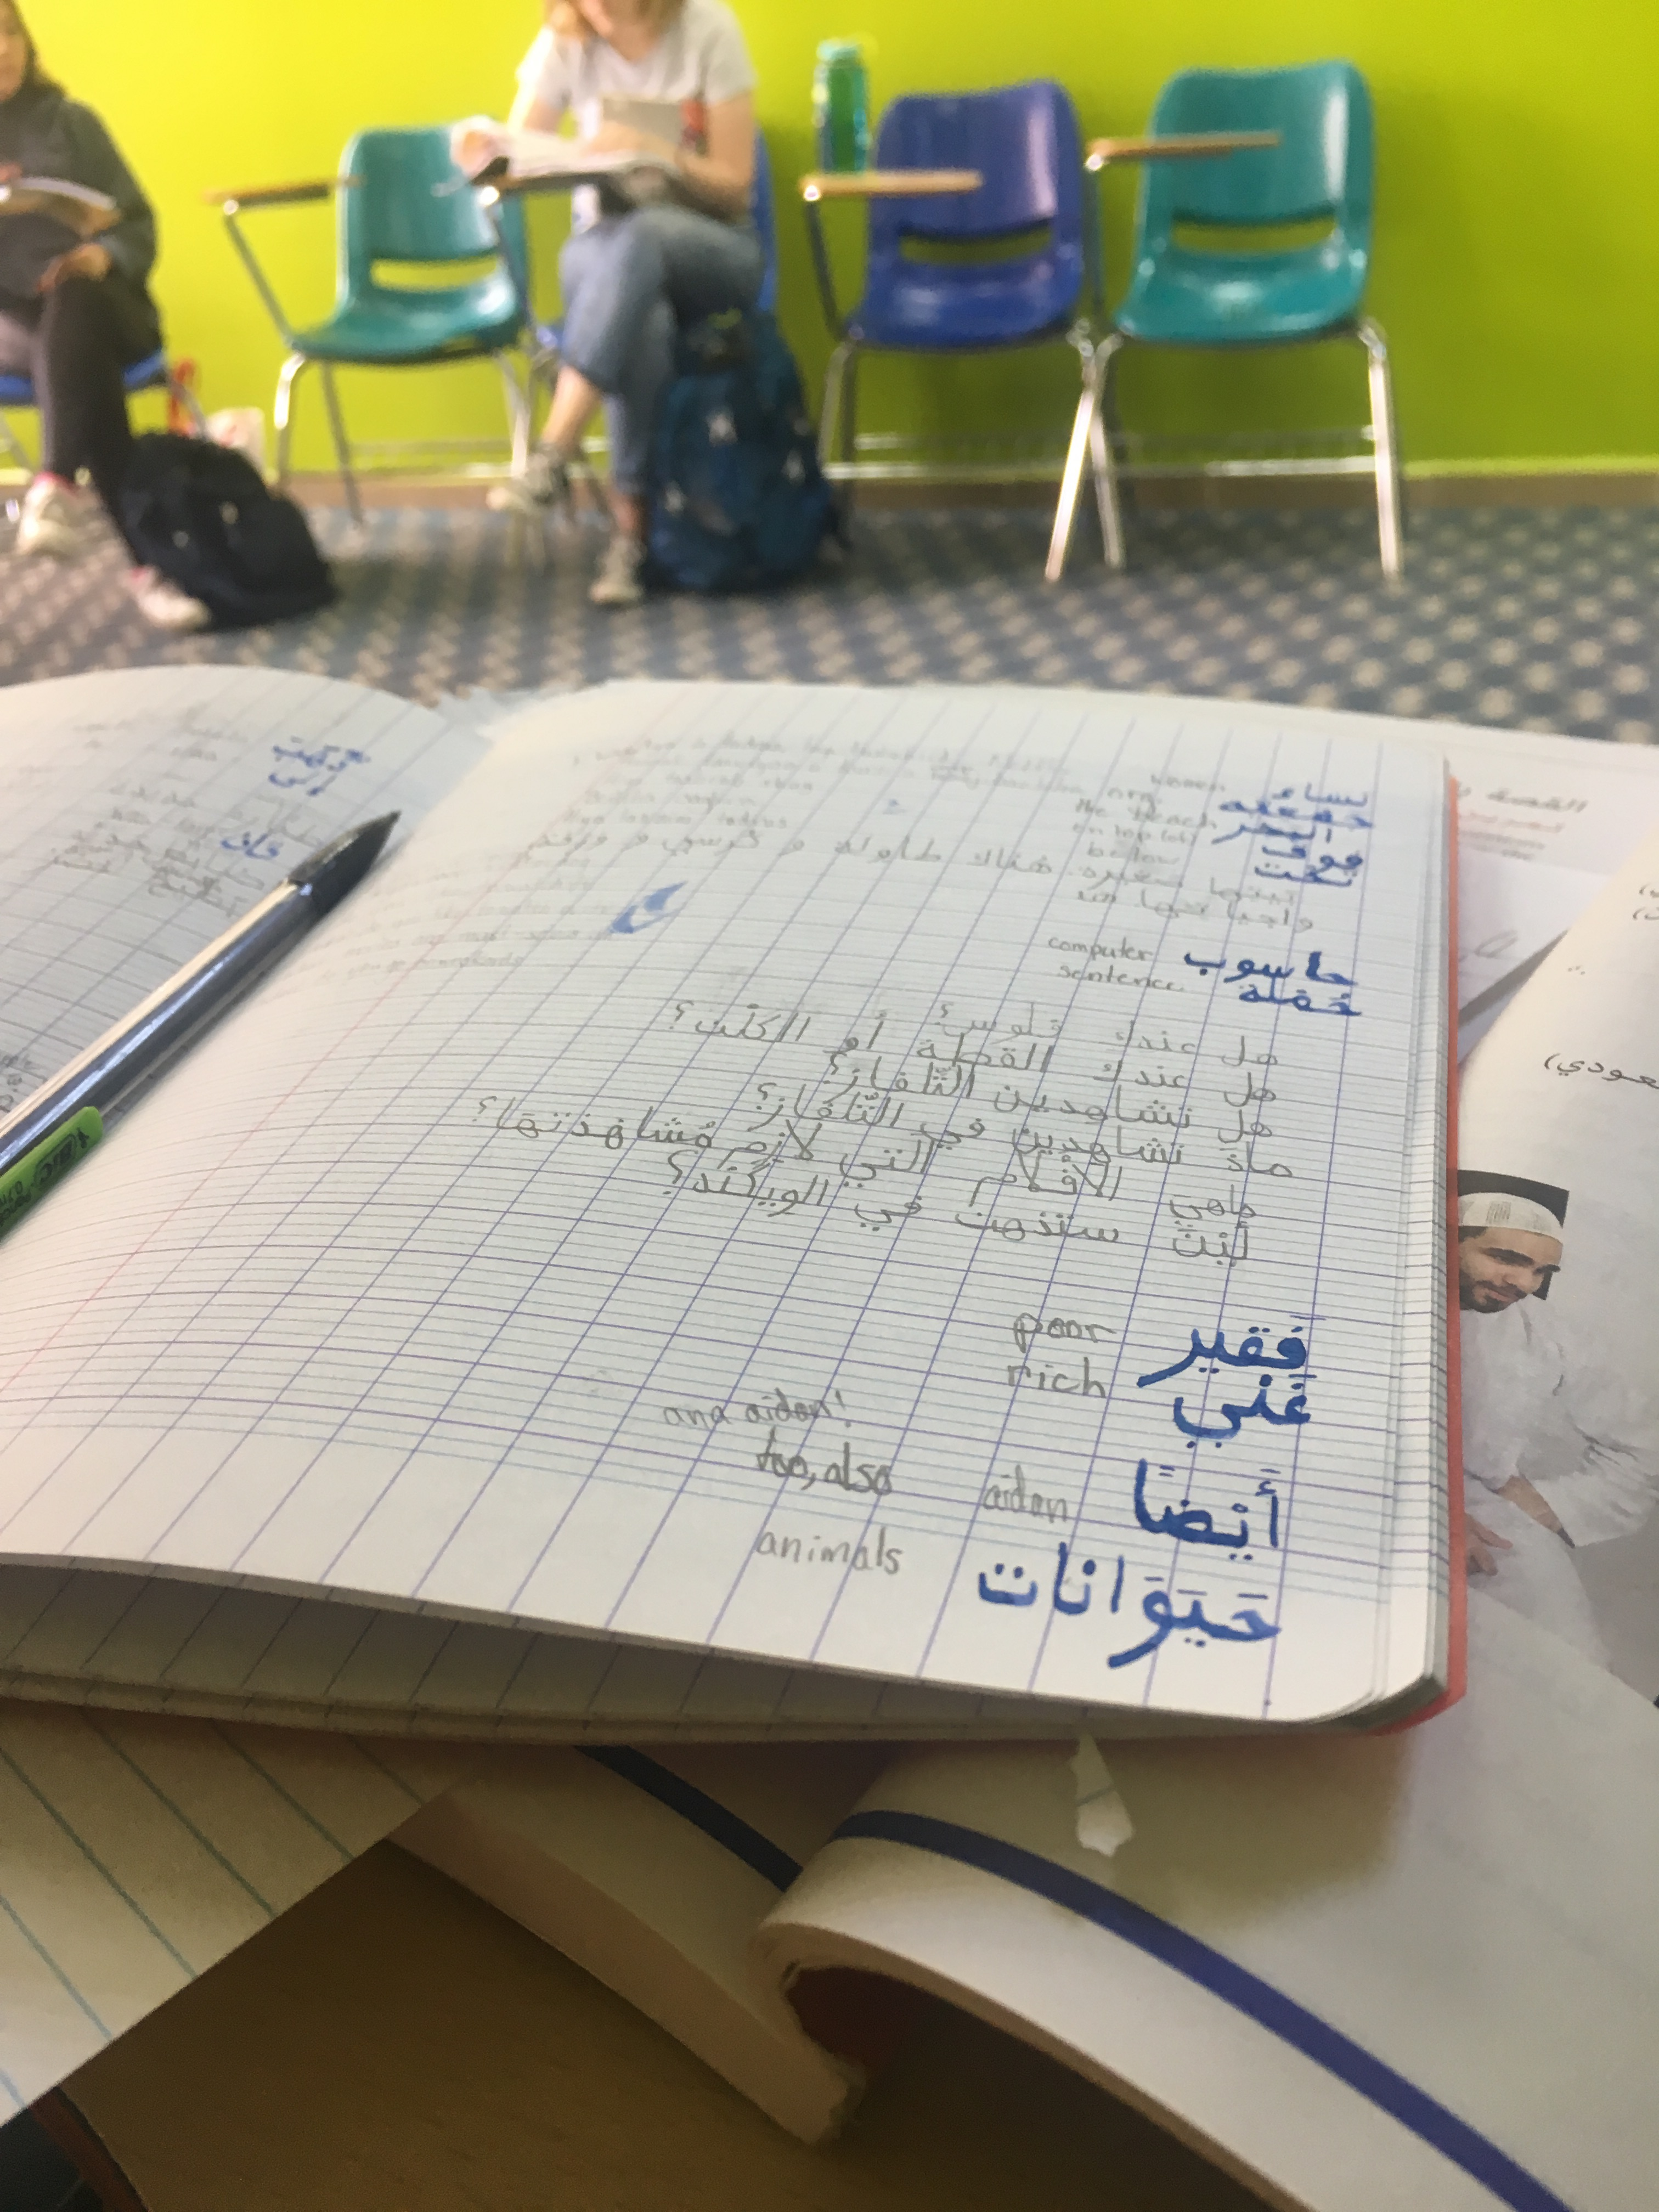 MSA class and notes